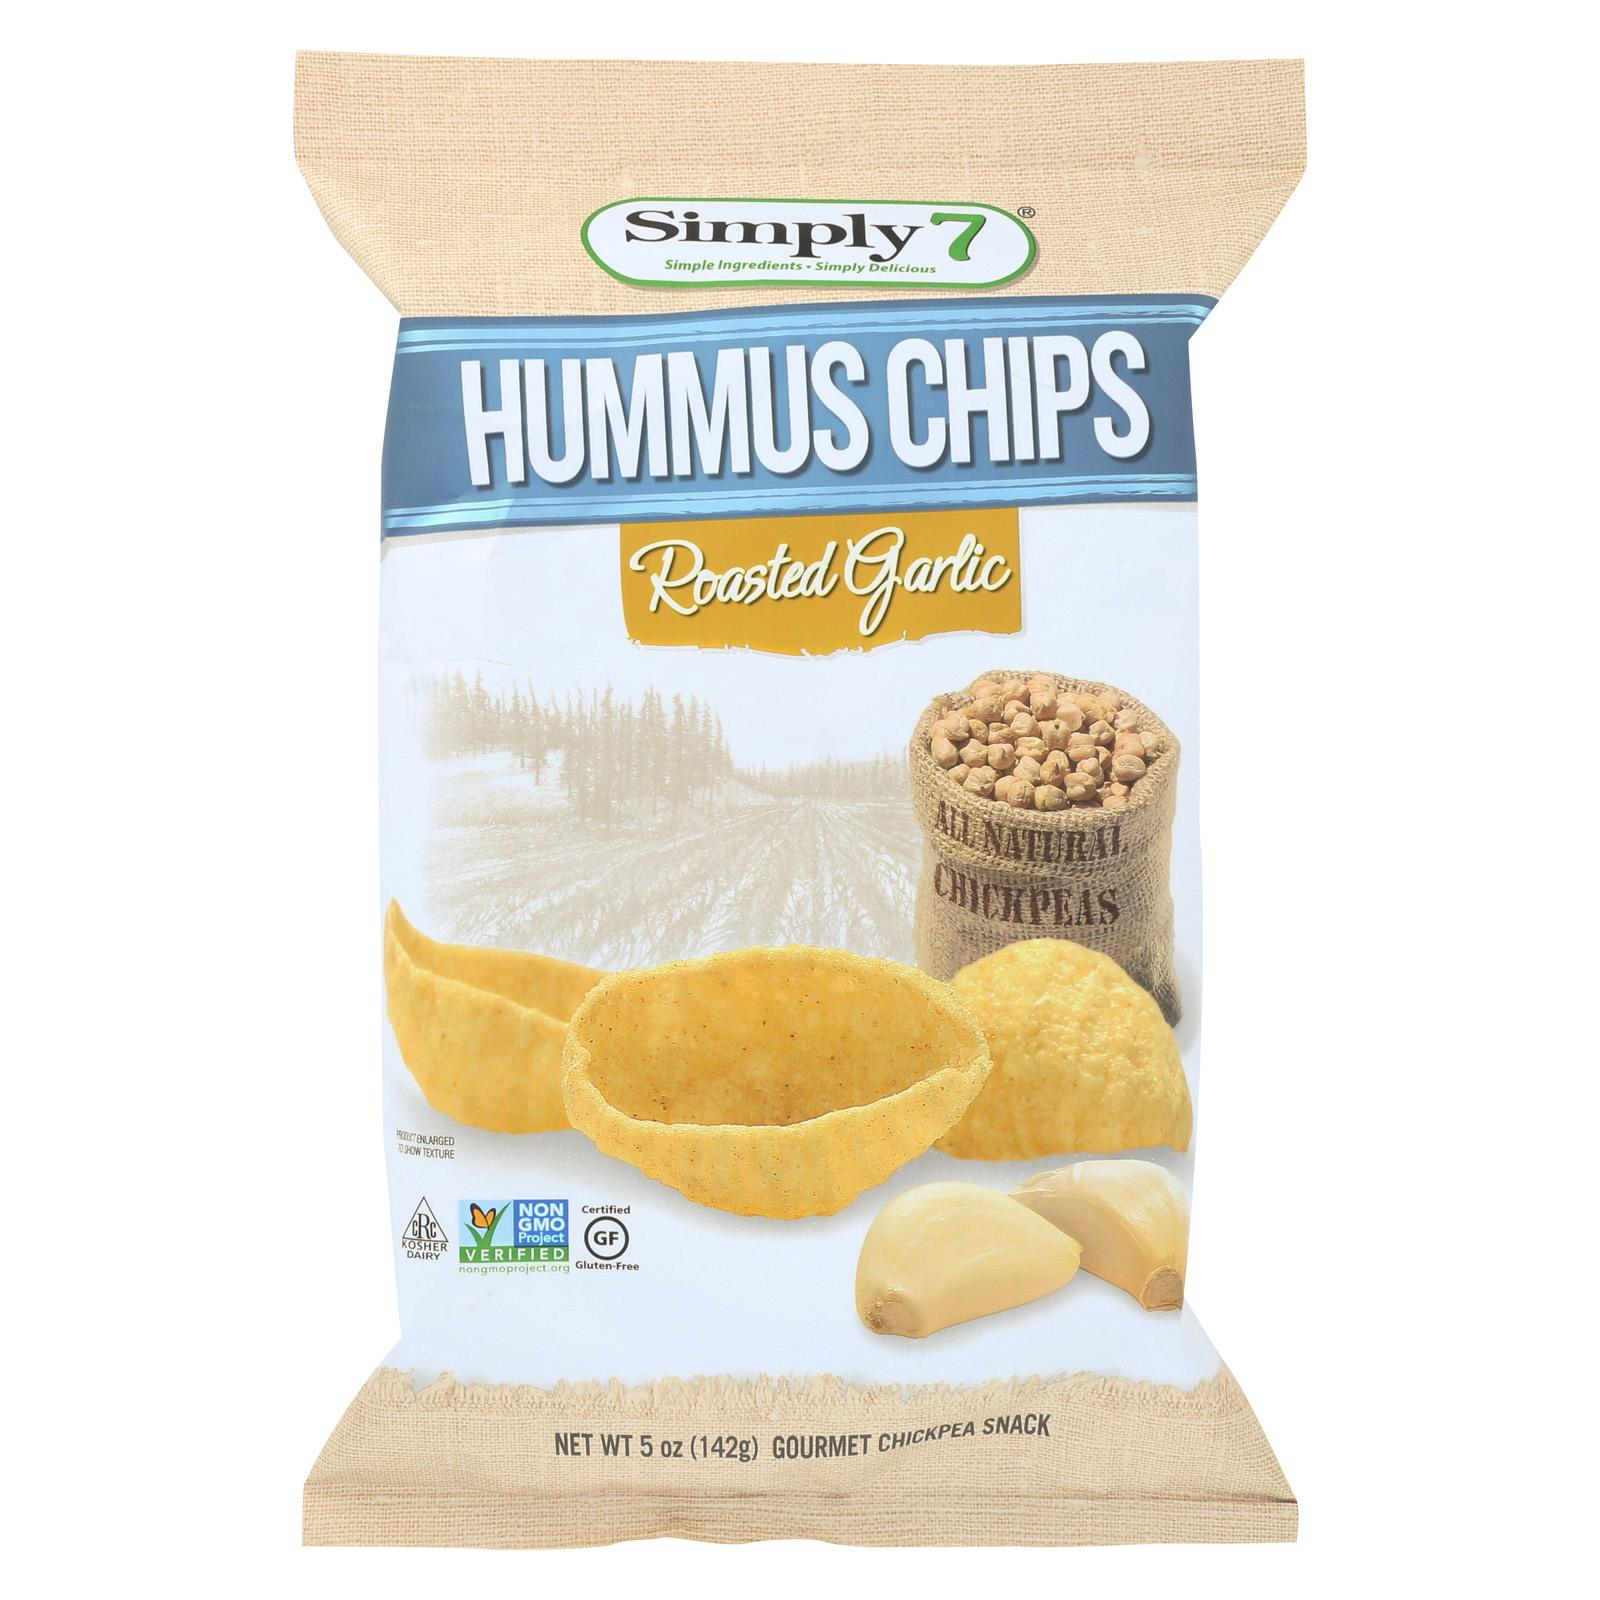 Simply 7 Hummus Chips Roasted Garlic